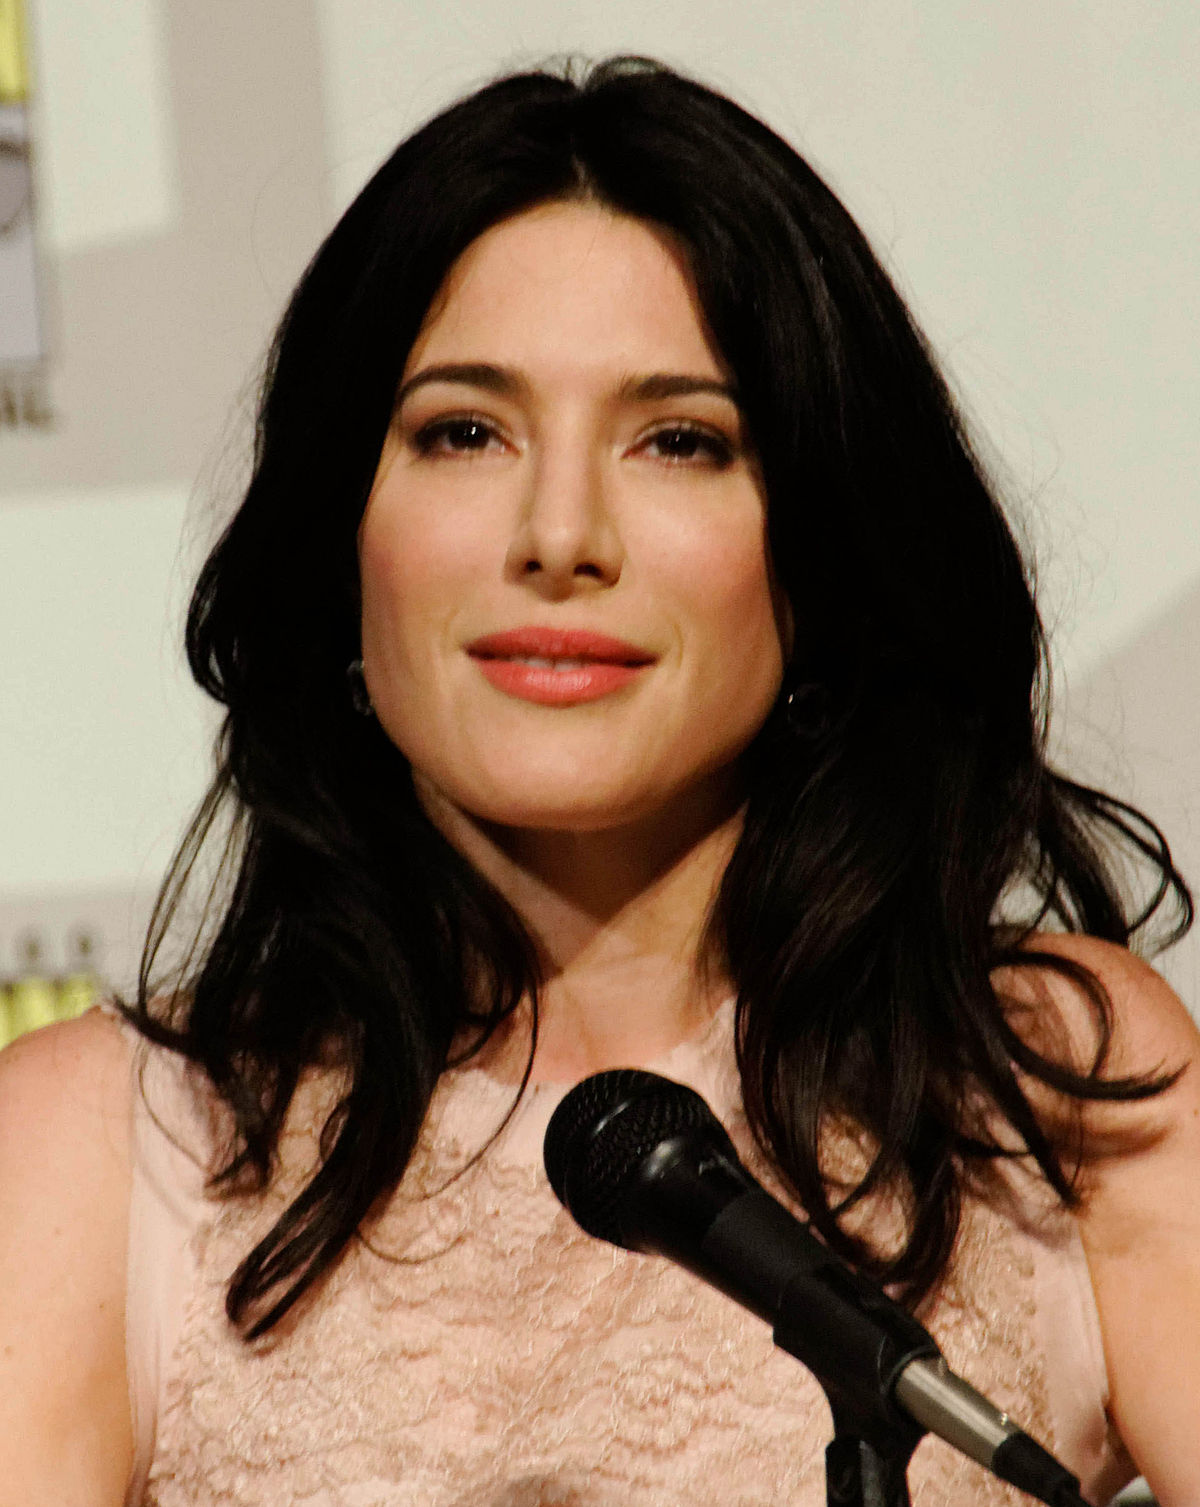 jaime murray wikipedia la enciclopedia libre. Black Bedroom Furniture Sets. Home Design Ideas